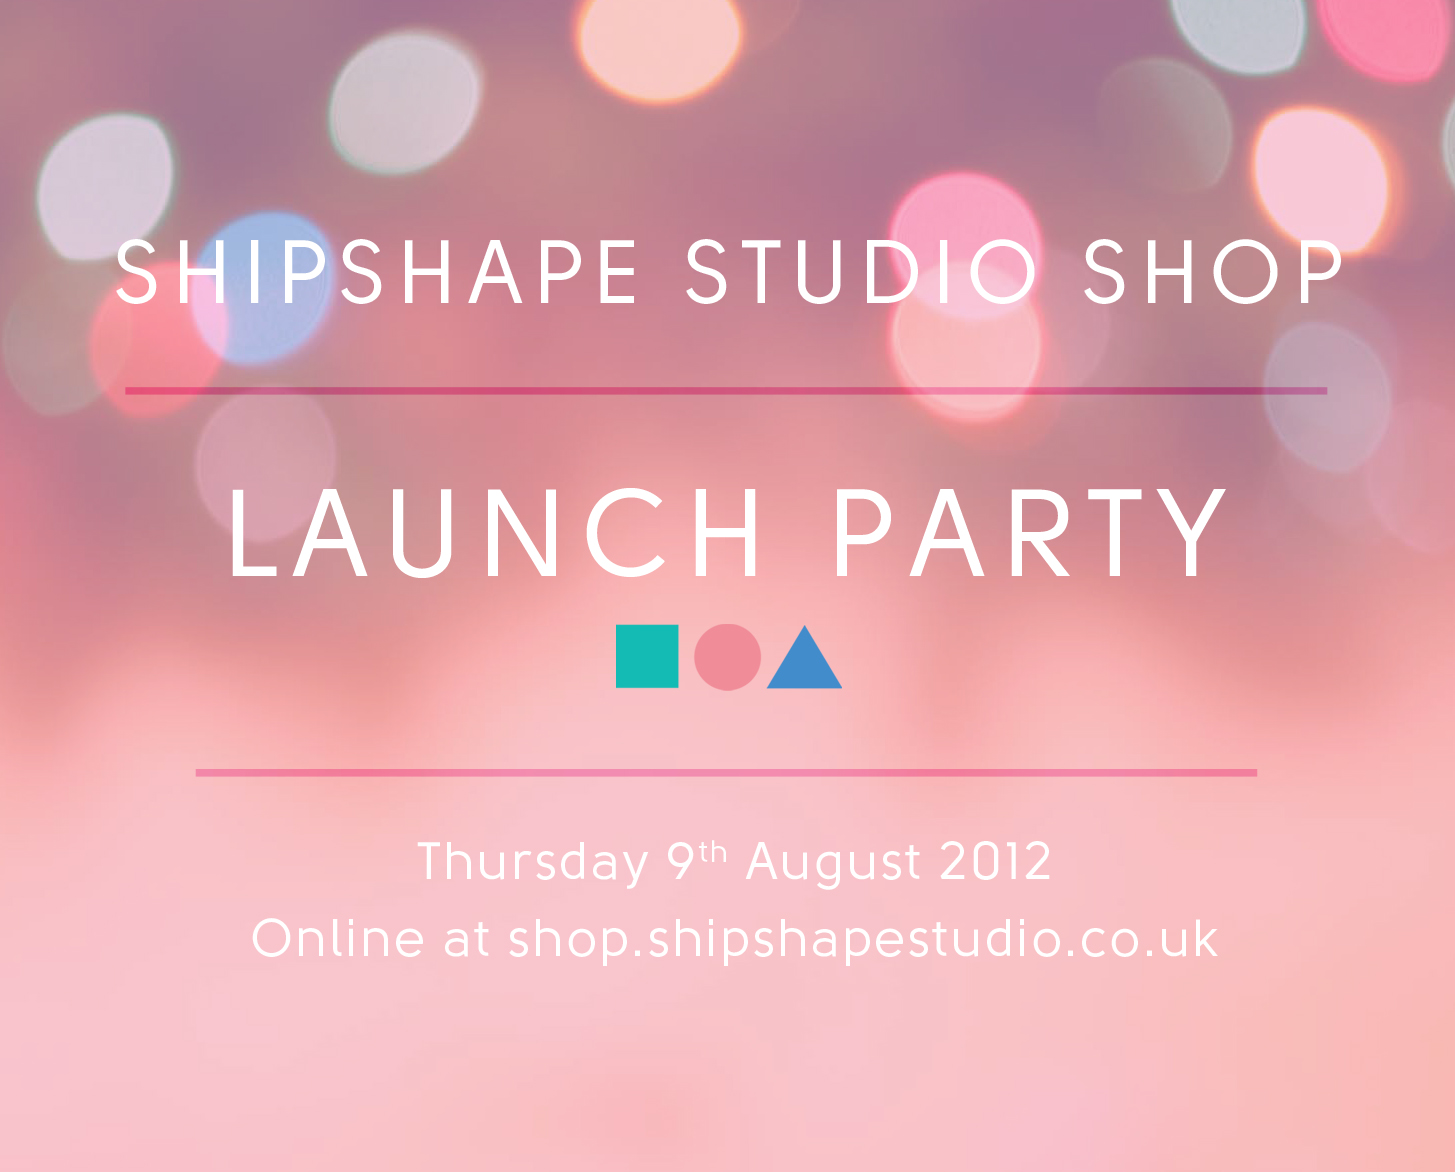 Shipshape Studio shop launch party - August 2012